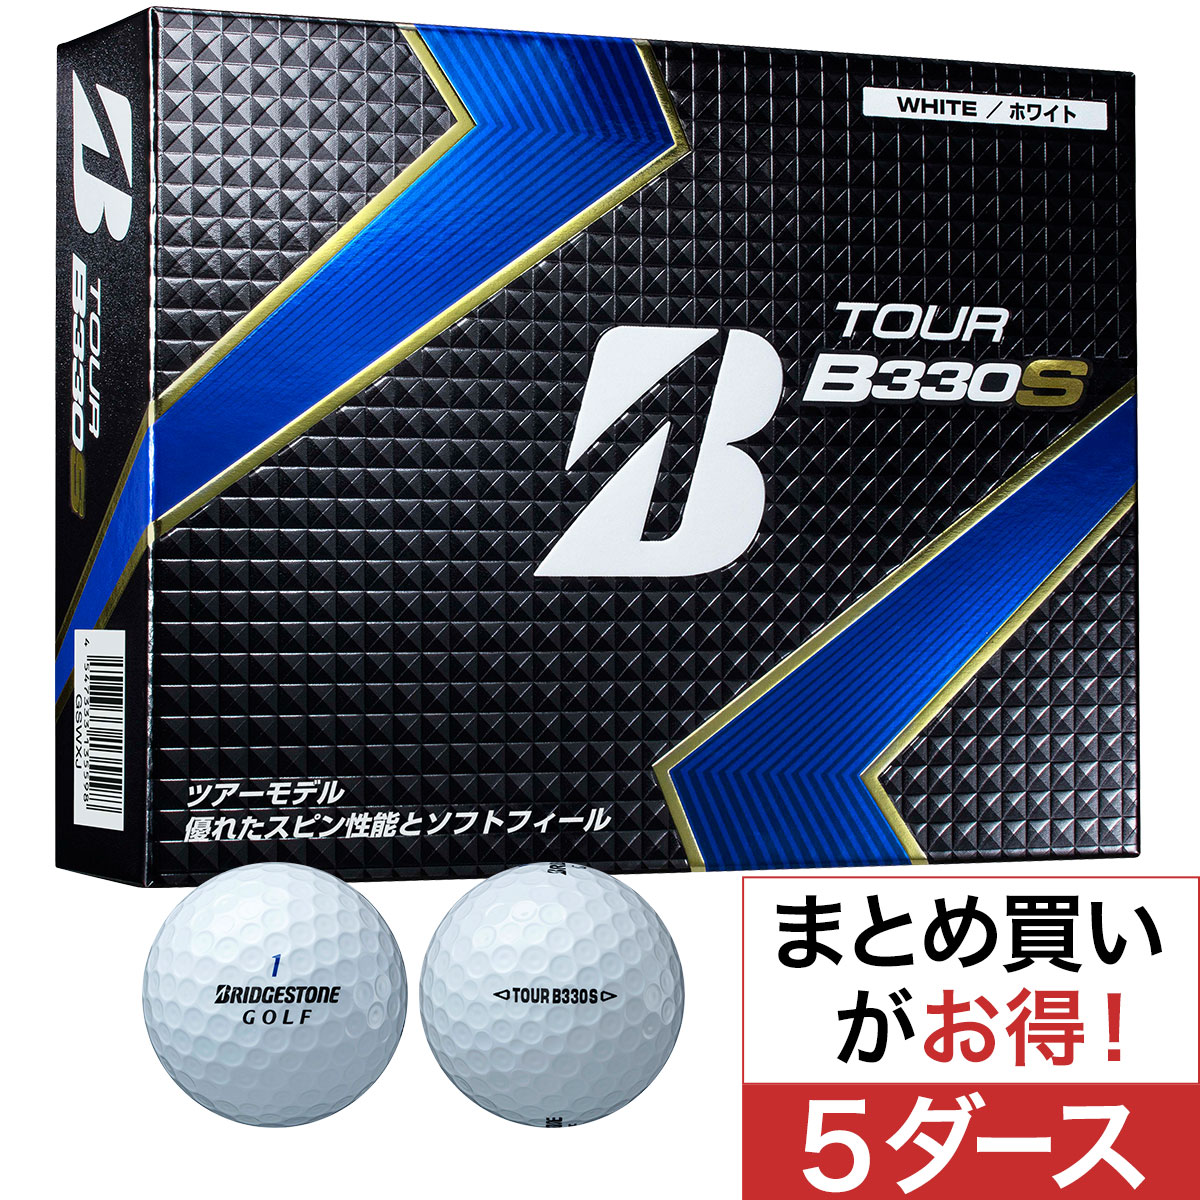 TOUR B330S ボール 5ダースセット